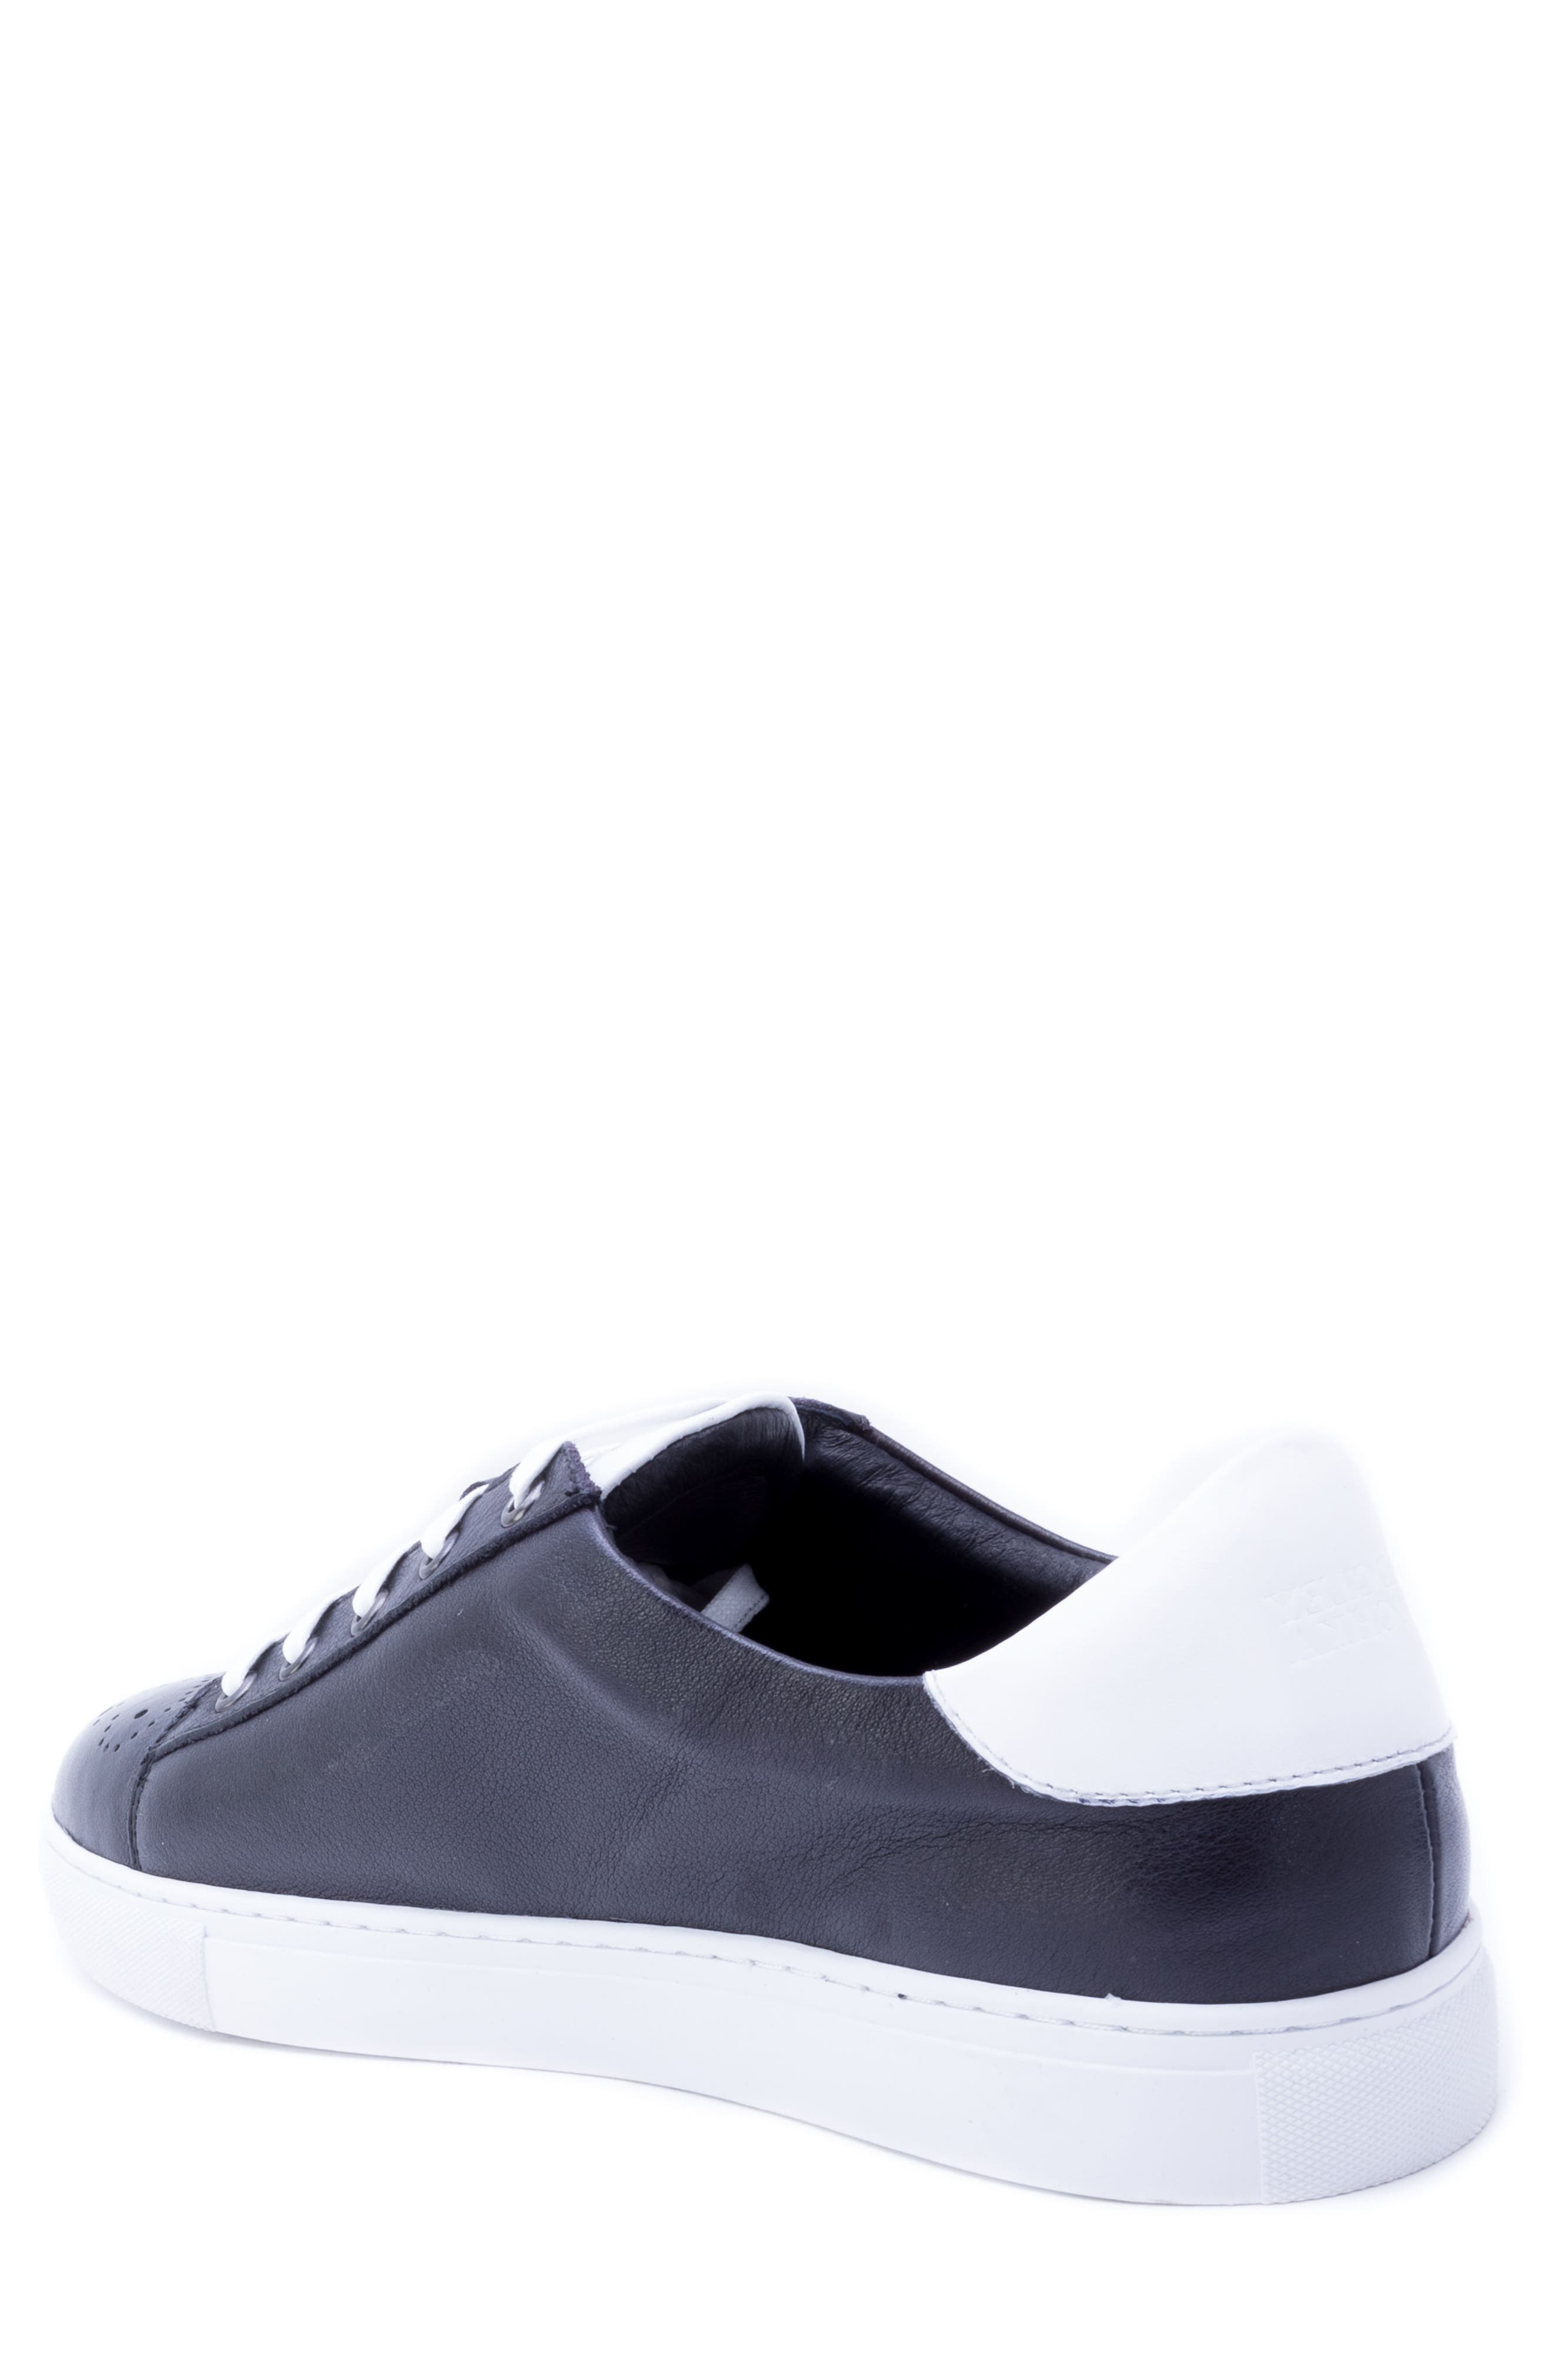 Sinatra Sneaker,                             Alternate thumbnail 2, color,                             BLACK LEATHER